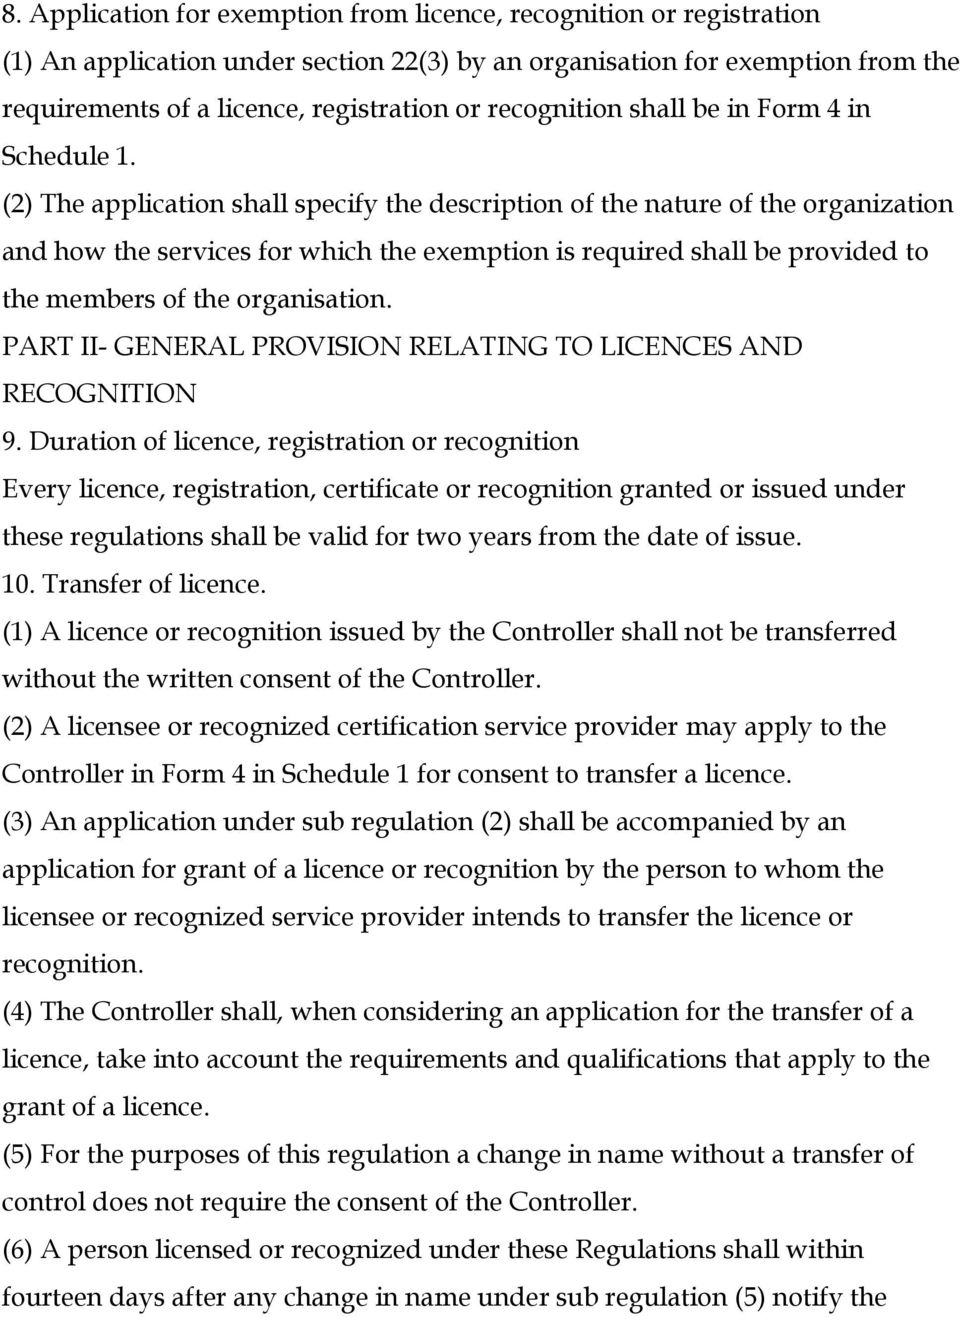 (2) The application shall specify the description of the nature of the organization and how the services for which the exemption is required shall be provided to the members of the organisation.